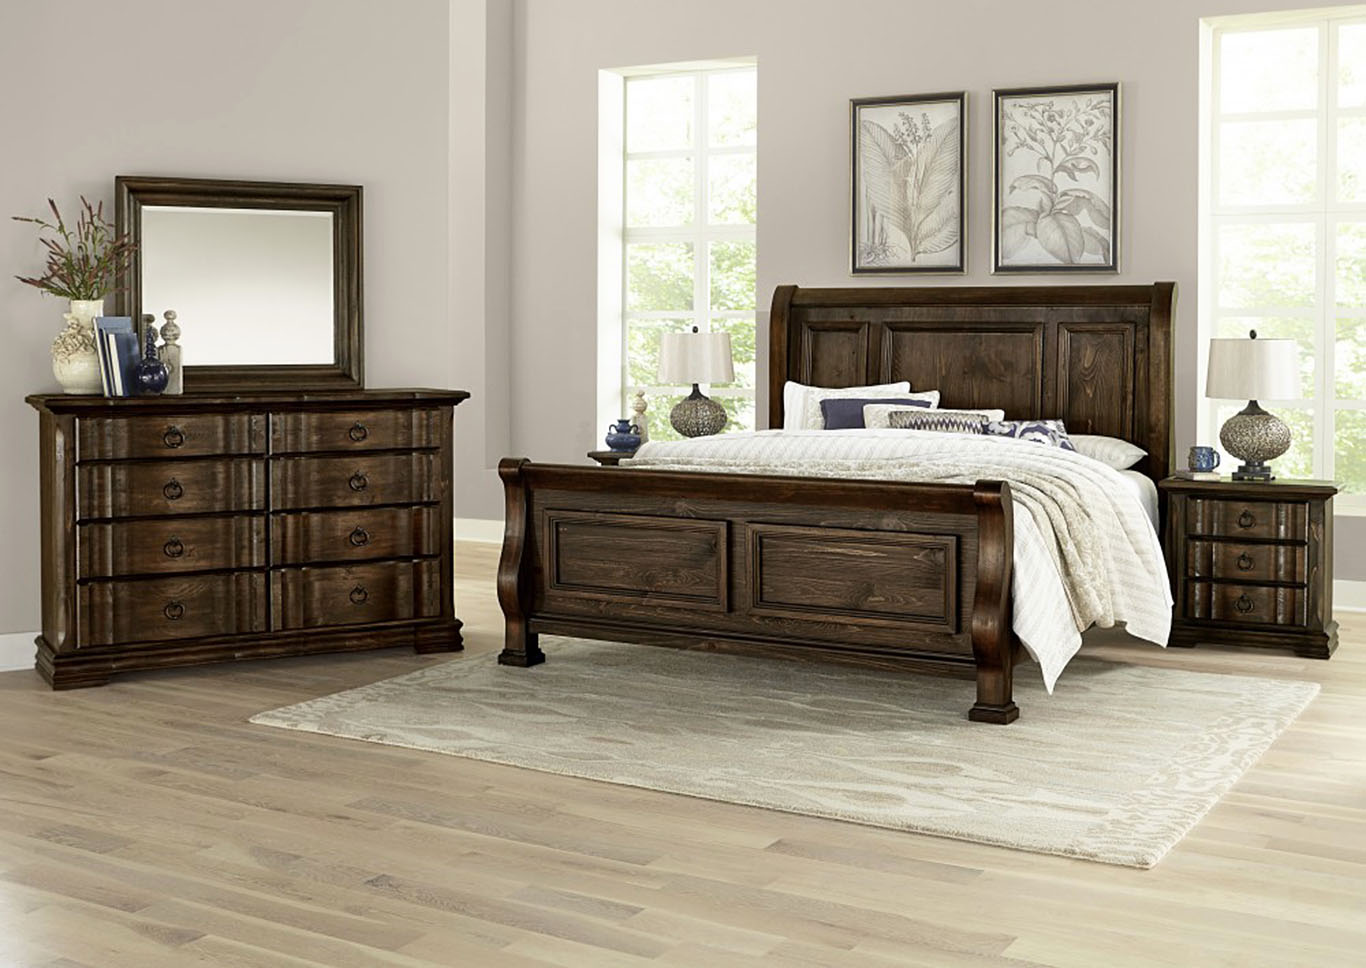 Rustic Hills Coffee Queen Sleigh Bed,Vaughan-Bassett